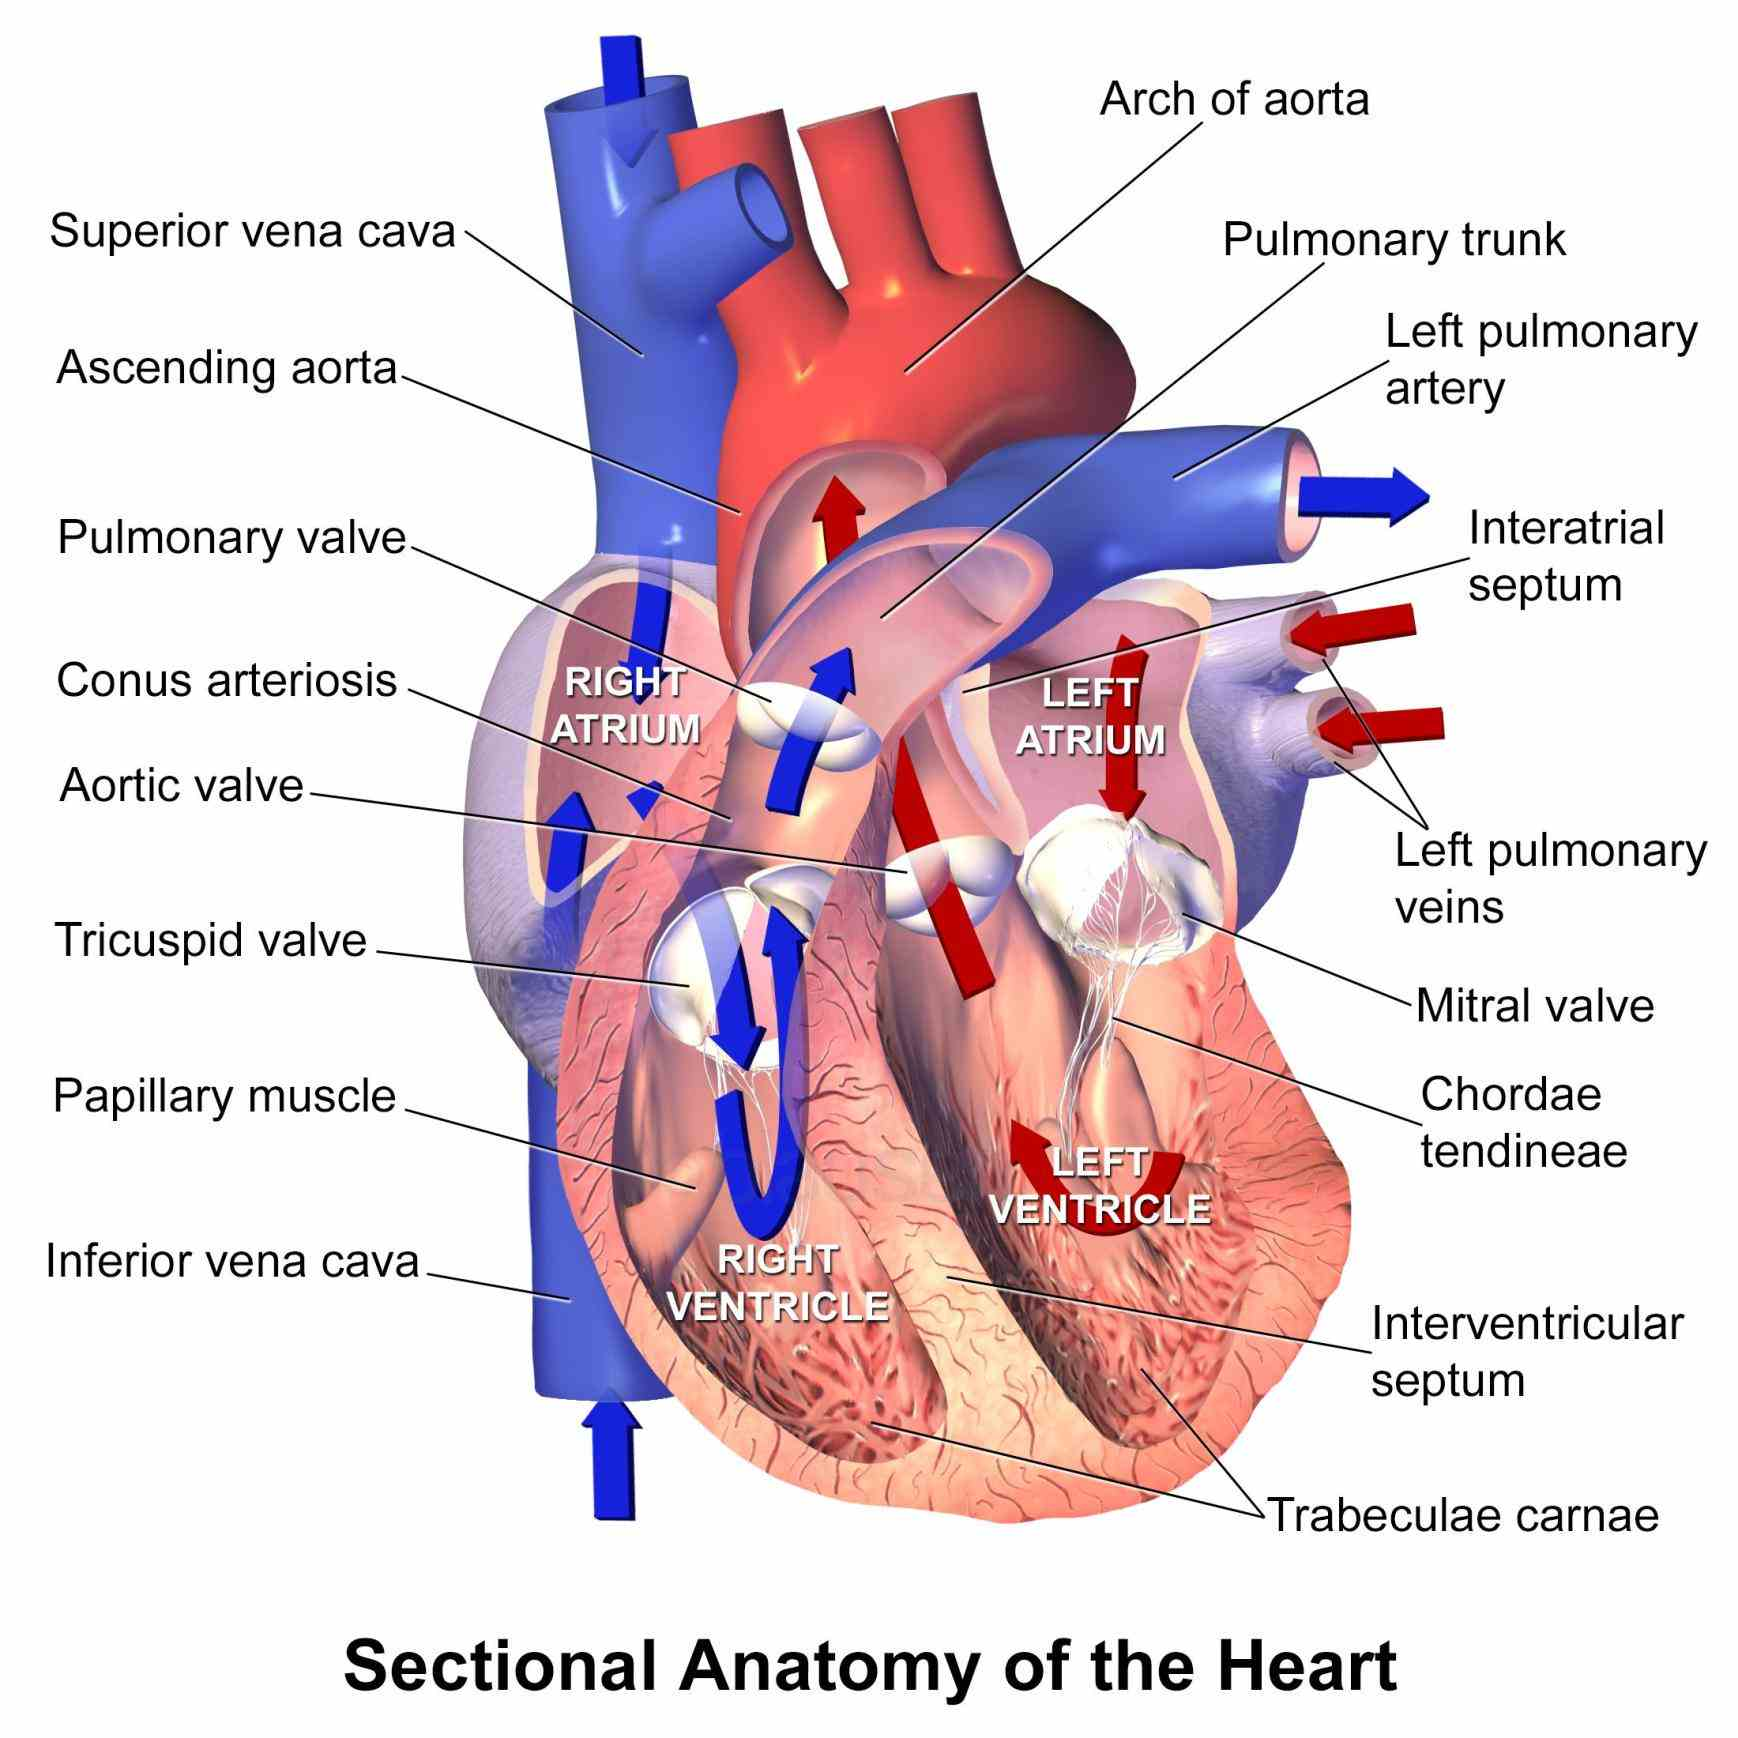 to Images Of Internal Structure Of Heart find a good diagram go google images and type in the